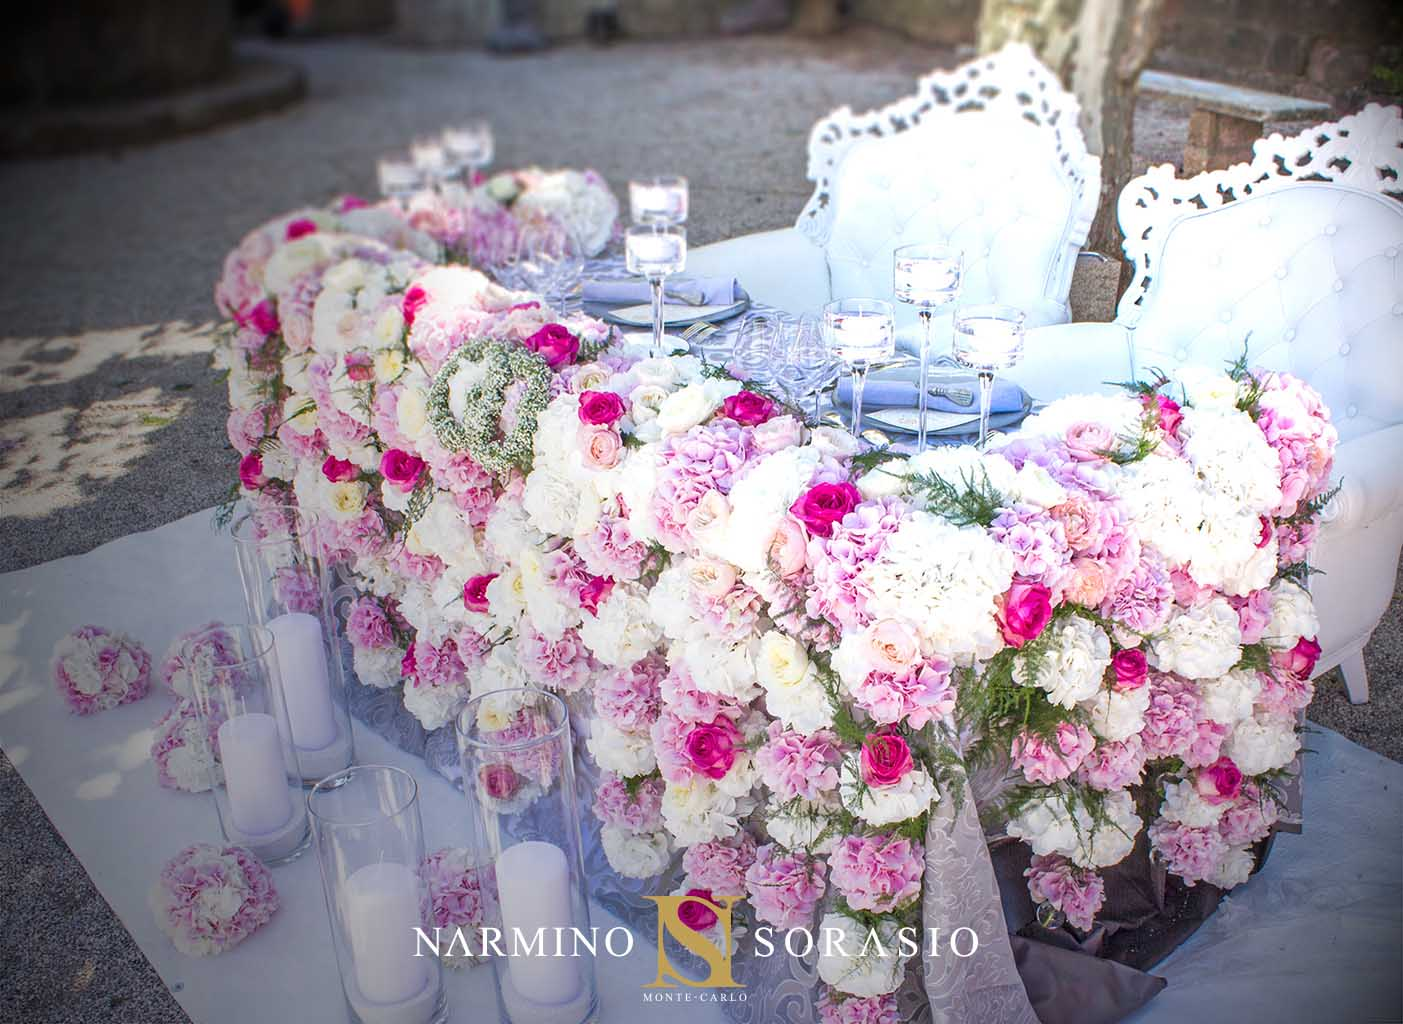 The bride's table decorated with beautiful flowers